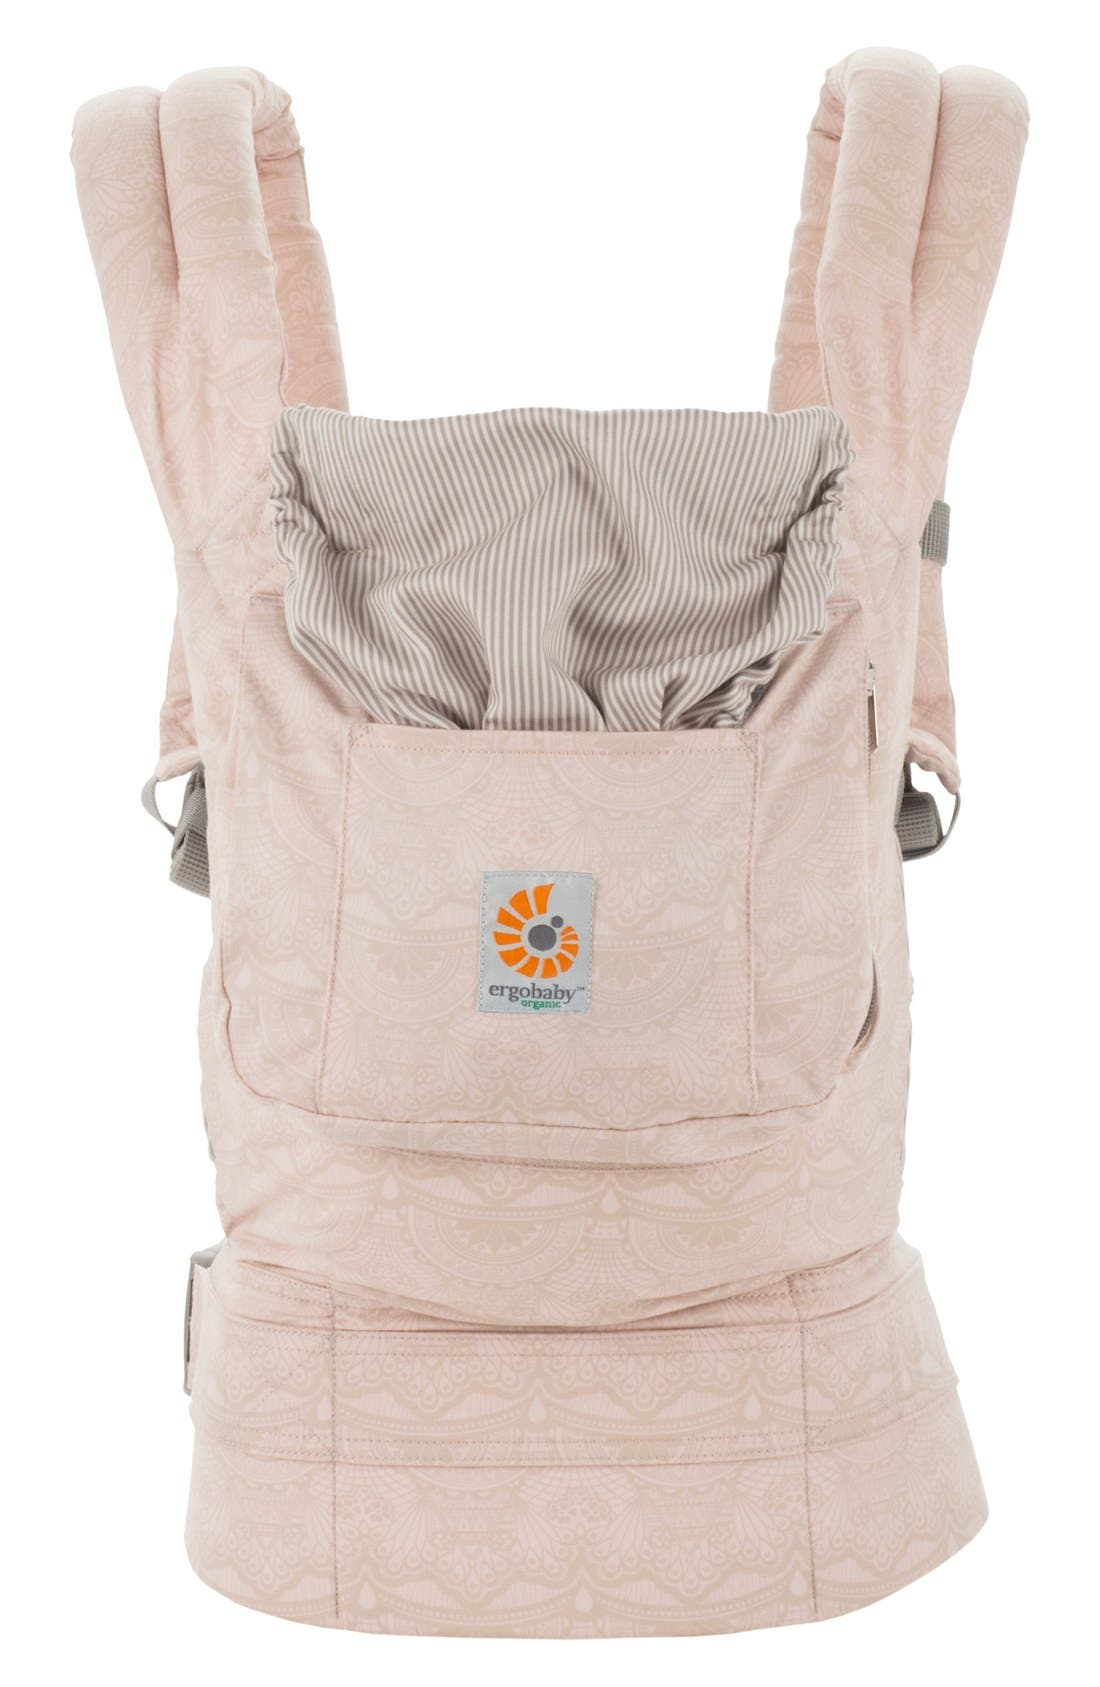 Alternate Image 1 Selected - ERGObaby Organic Cotton Baby Carrier (Baby)